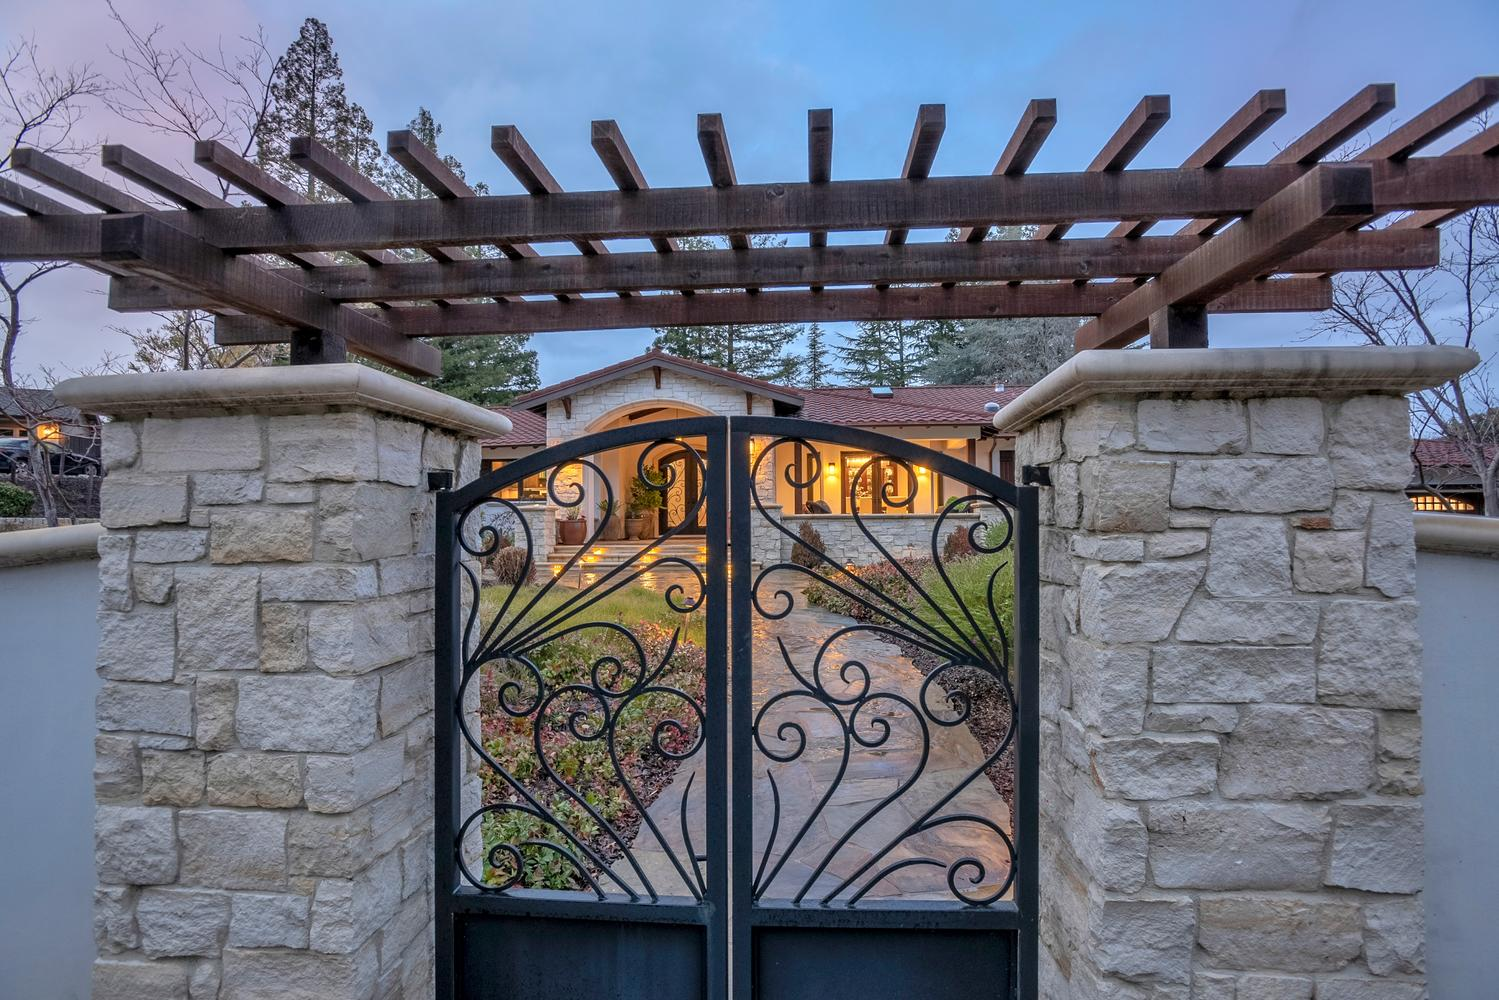 15977 Grandview Dr Monte-large-005-19-Front Gated Entry at Dusk-1499x1000-72dpi.jpg